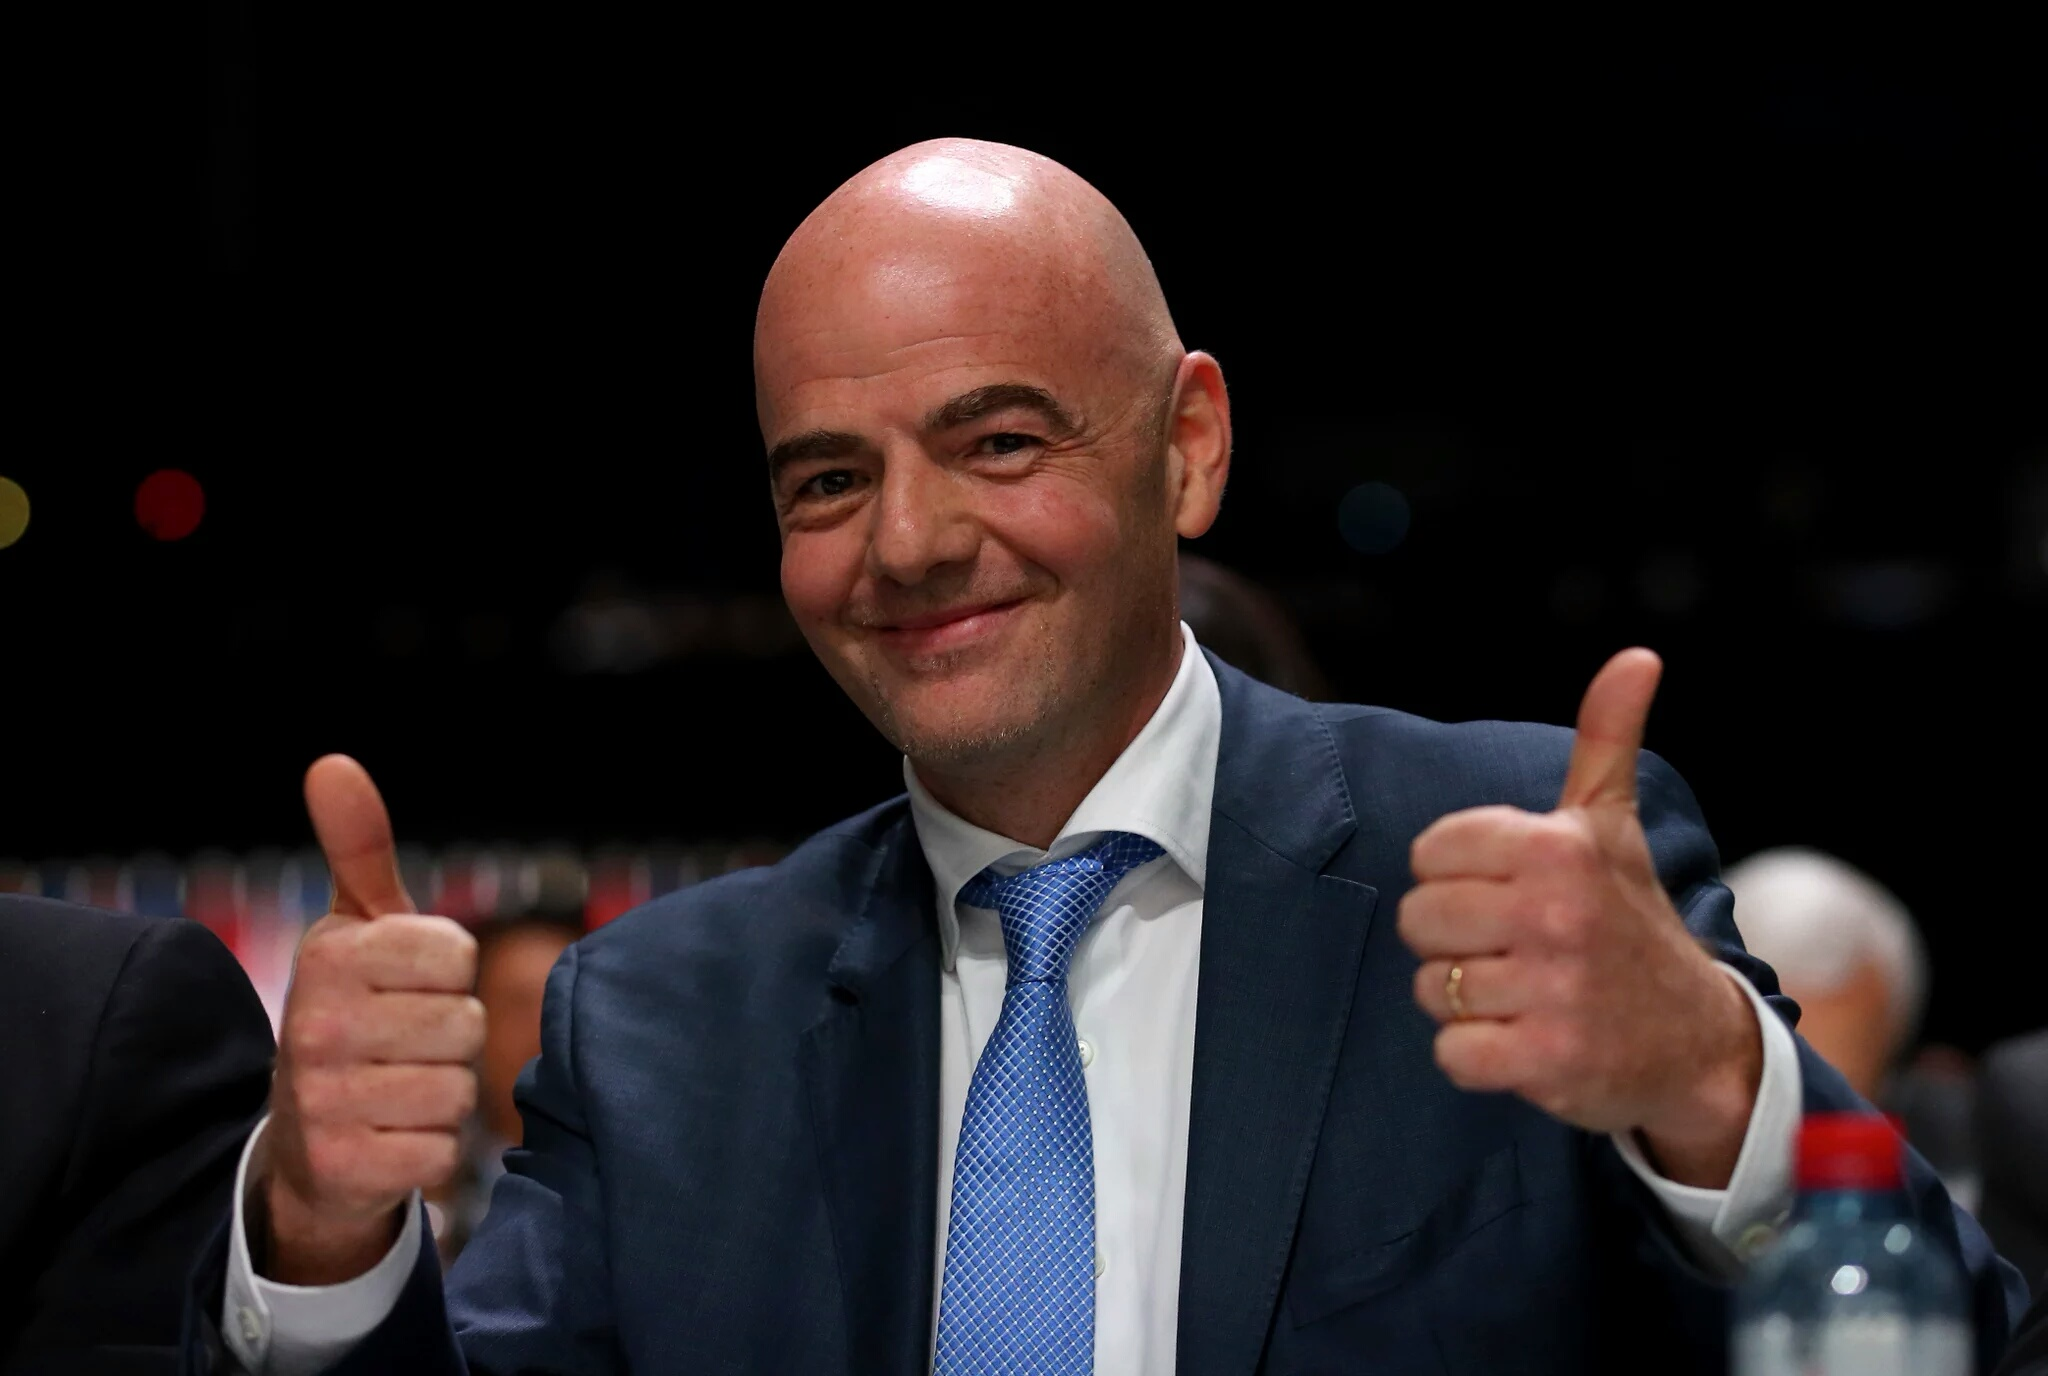 BREAKING: Gianni Infantino Is Announced As New FIFA President